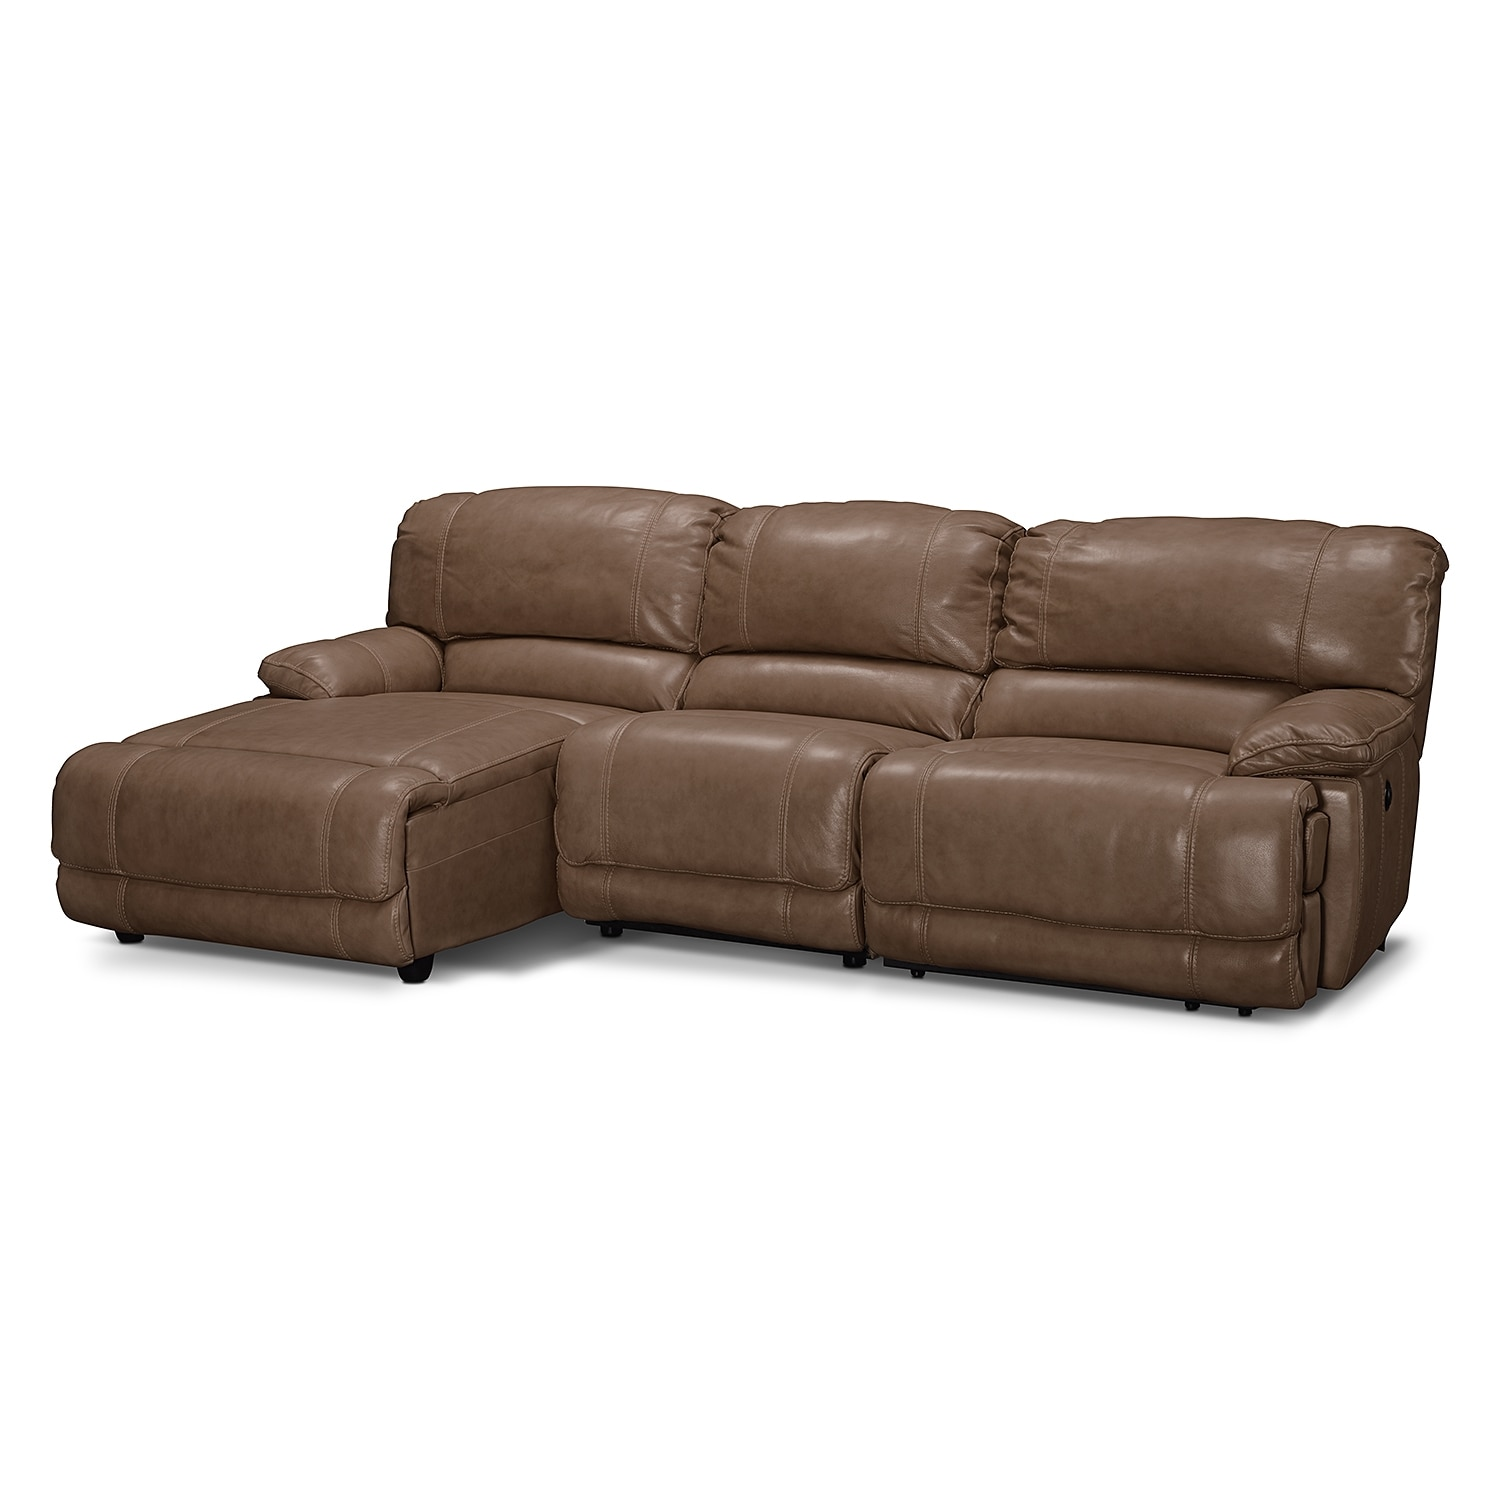 St malo 3 piece power reclining sectional with left for 3 piece sectional with chaise